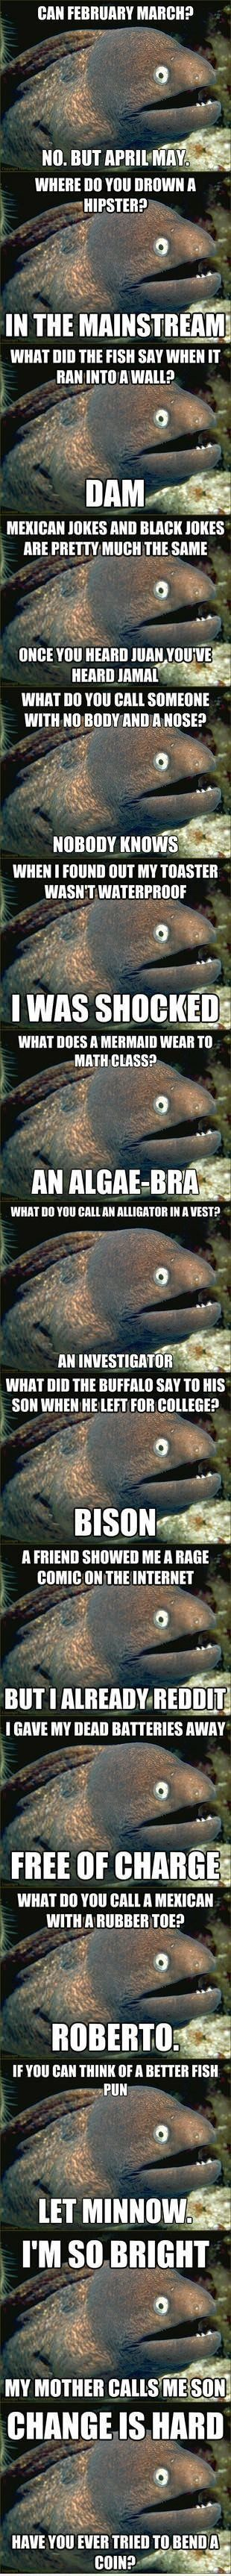 Bad joke eel meme.